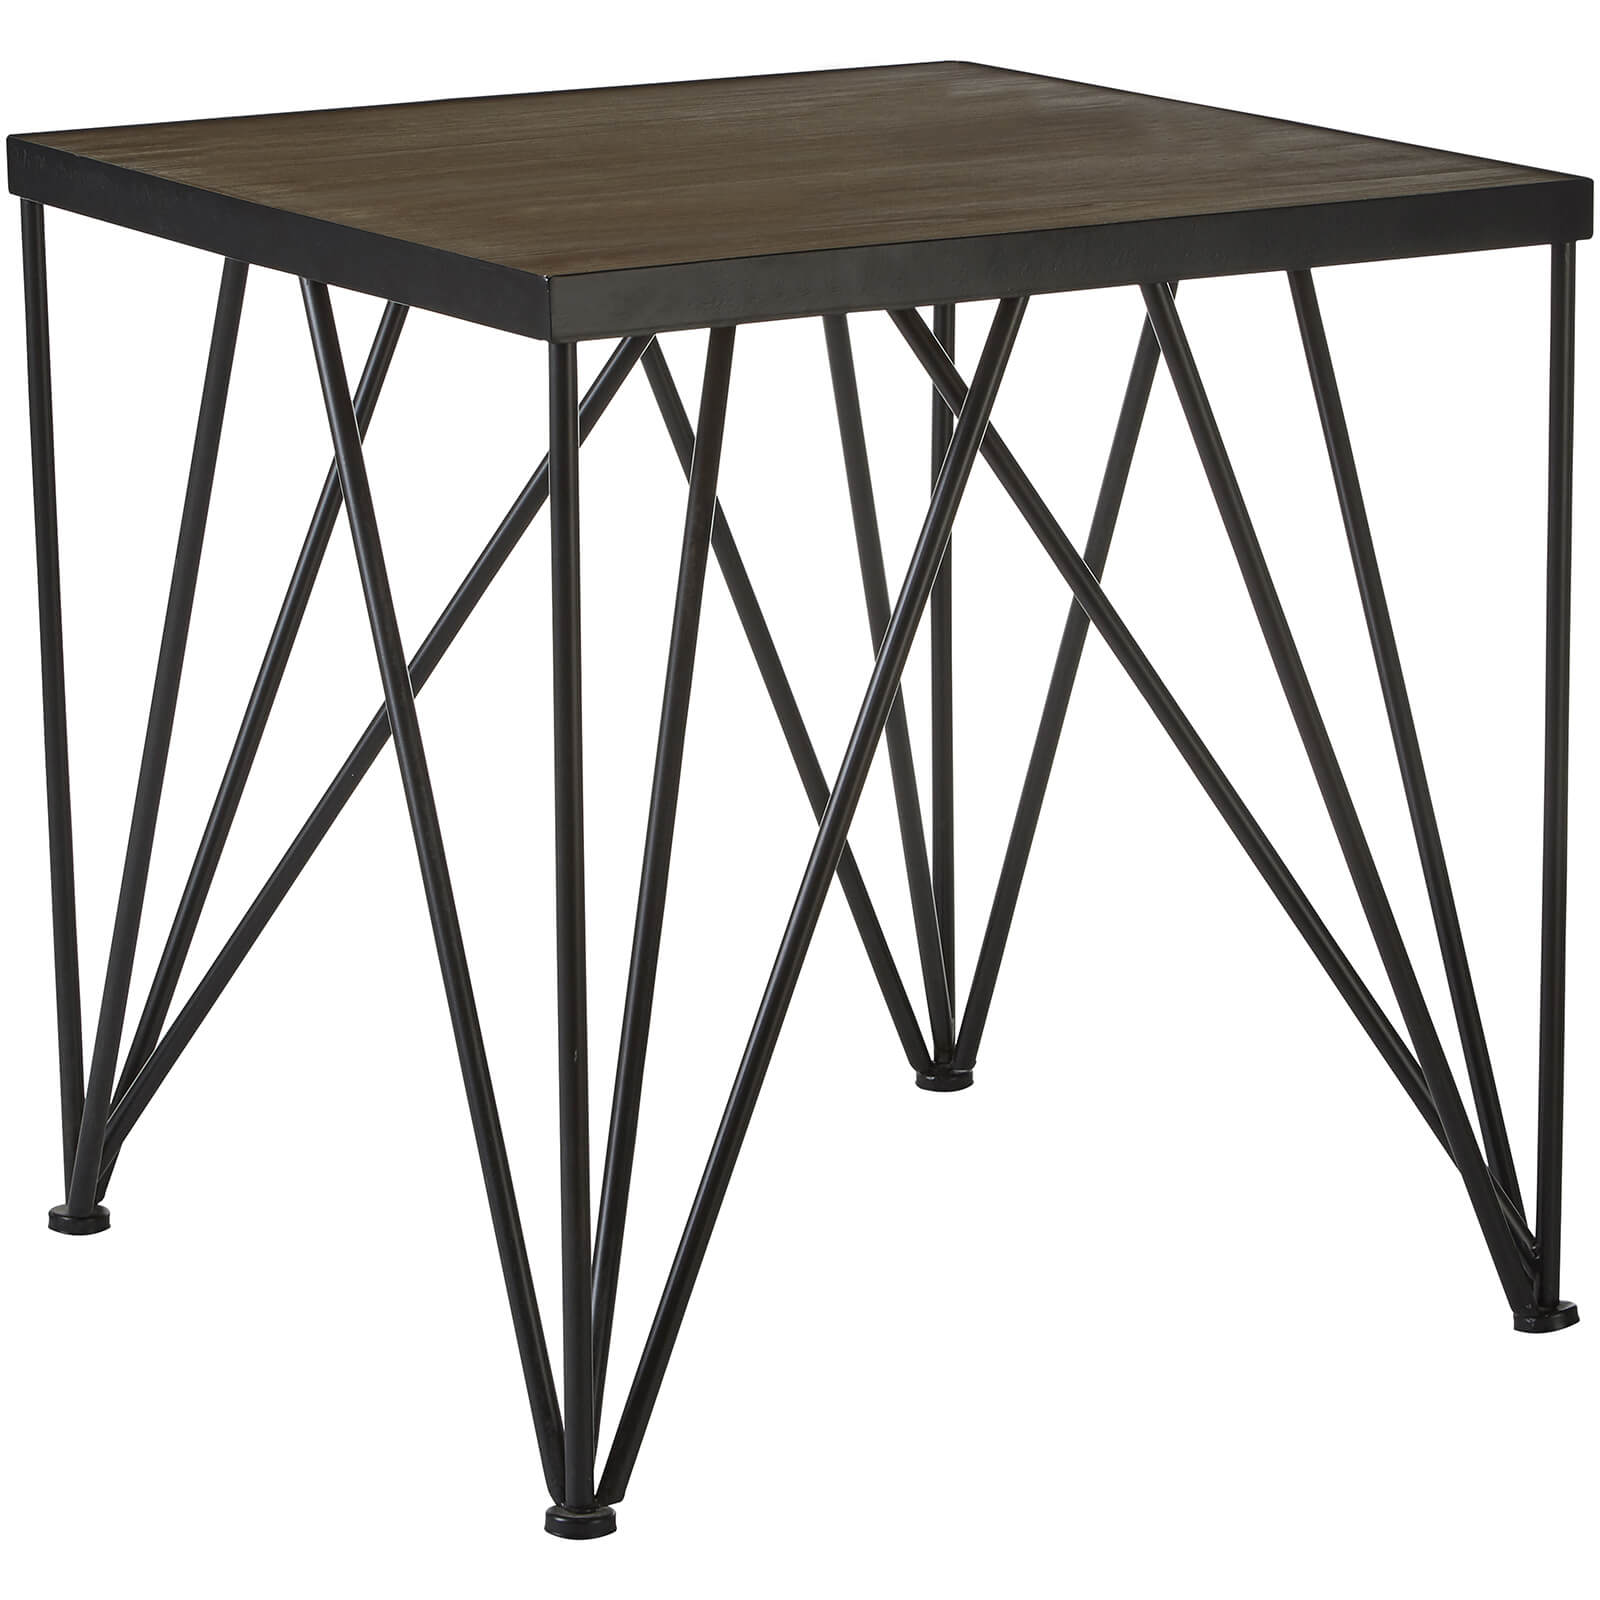 Fifty Five South New Foundry Square Side Table - Fir Wood/Metal